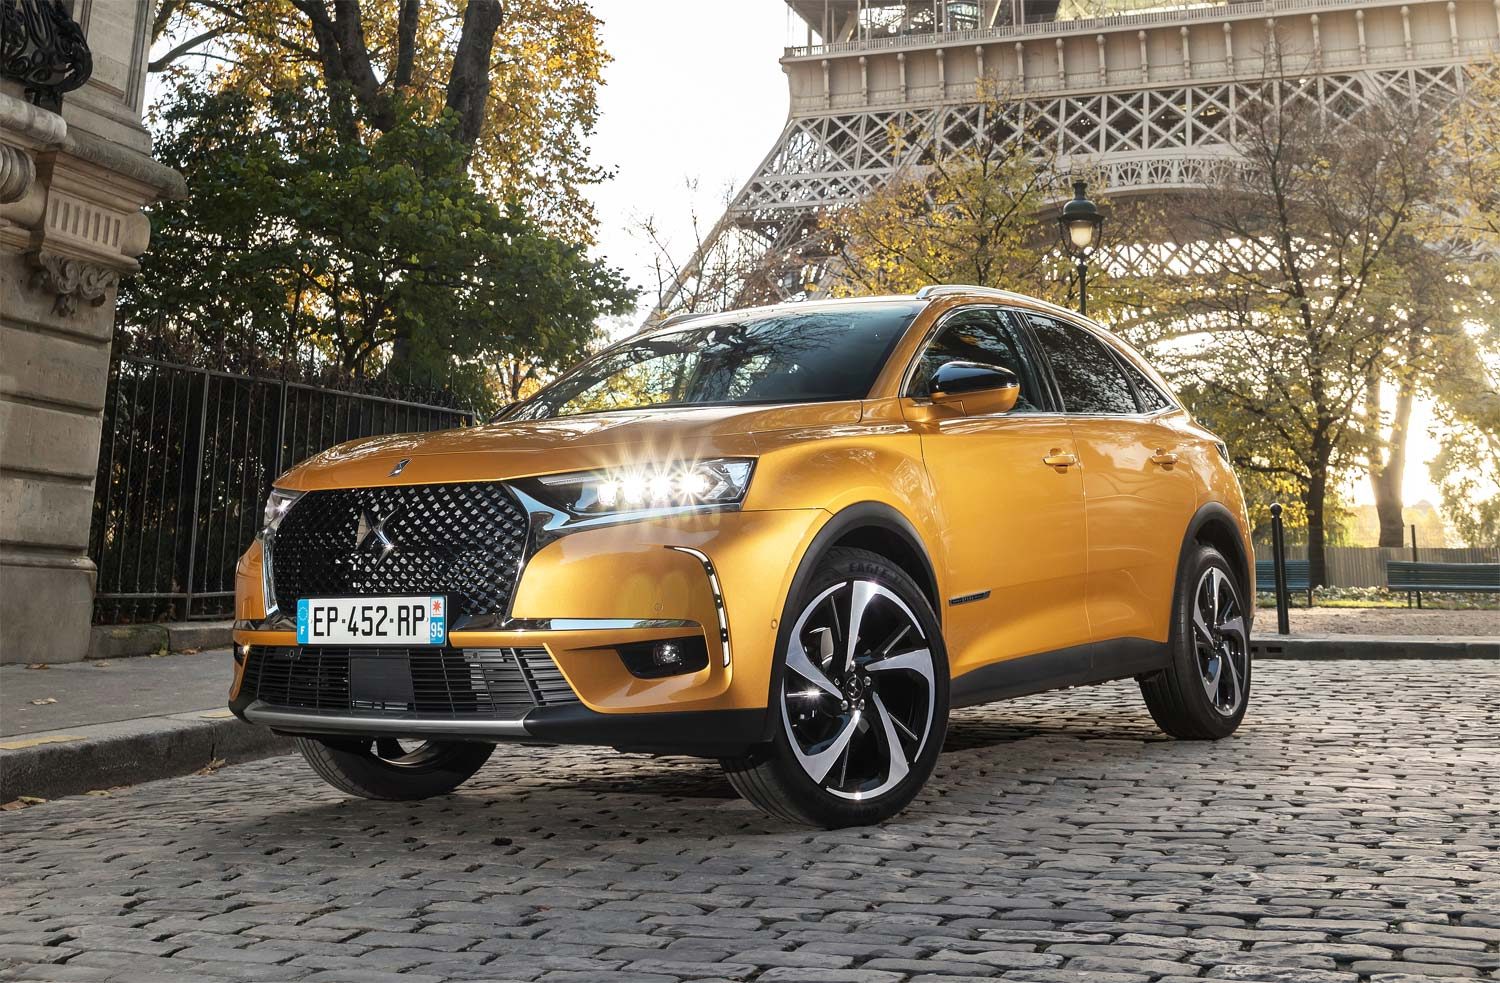 test drive and review of the ds 7 crossback suv in paris. Black Bedroom Furniture Sets. Home Design Ideas